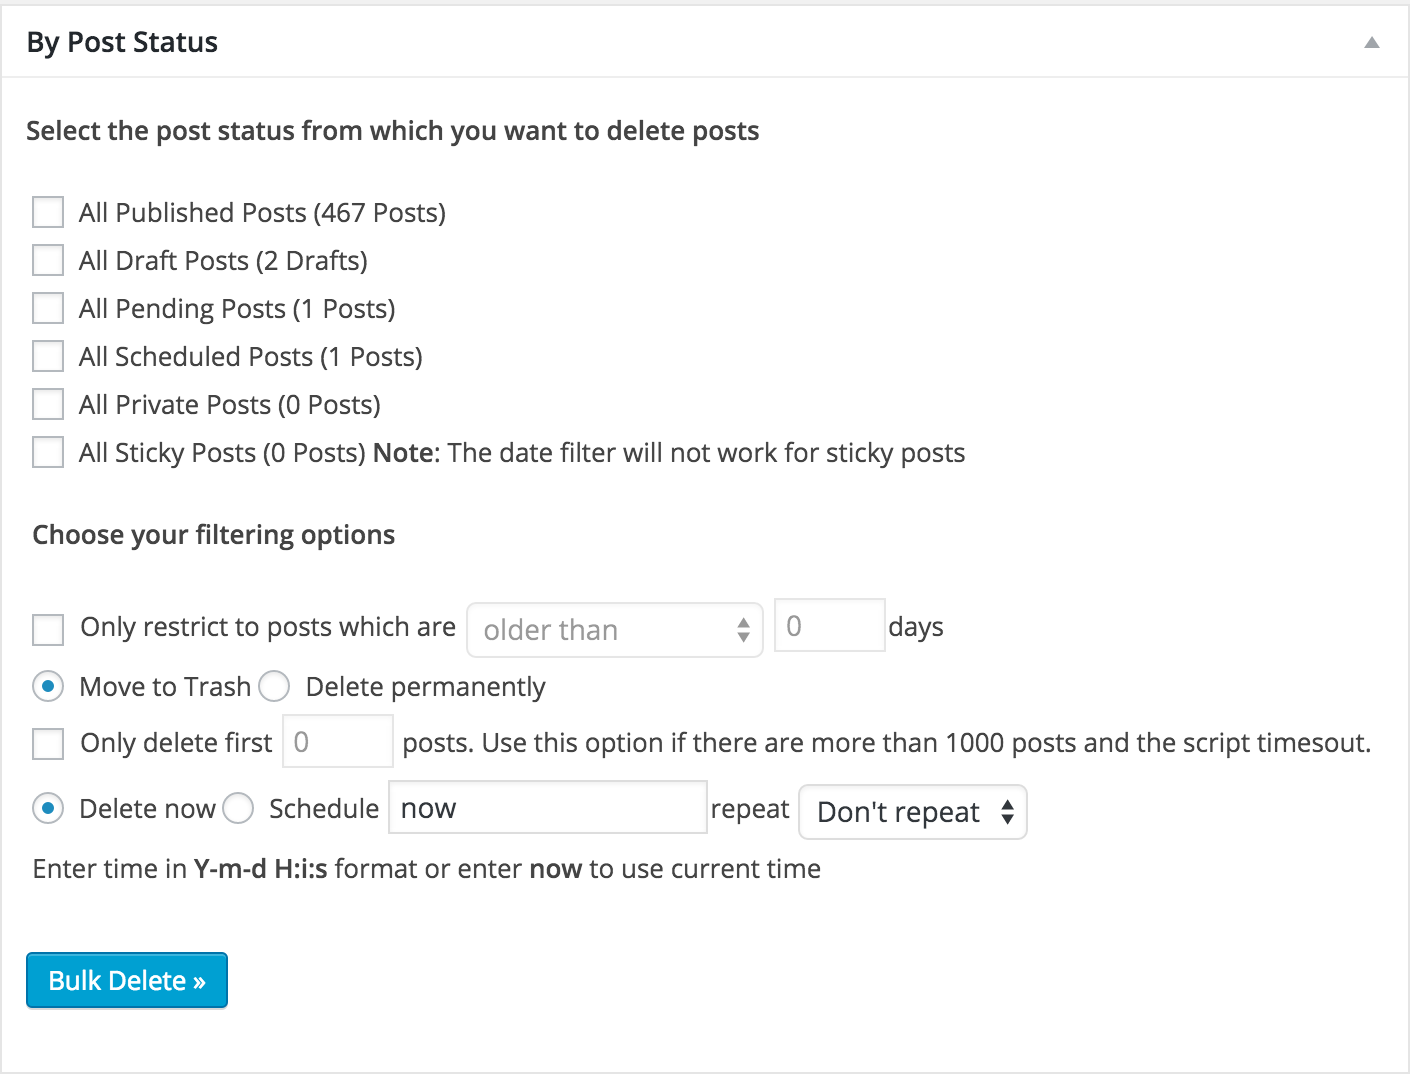 <p>The above screenshot shows how you can delete posts by post status. You can choose to delete published posts, draft posts, pending posts, scheduled posts, private posts or sticky posts.</p>